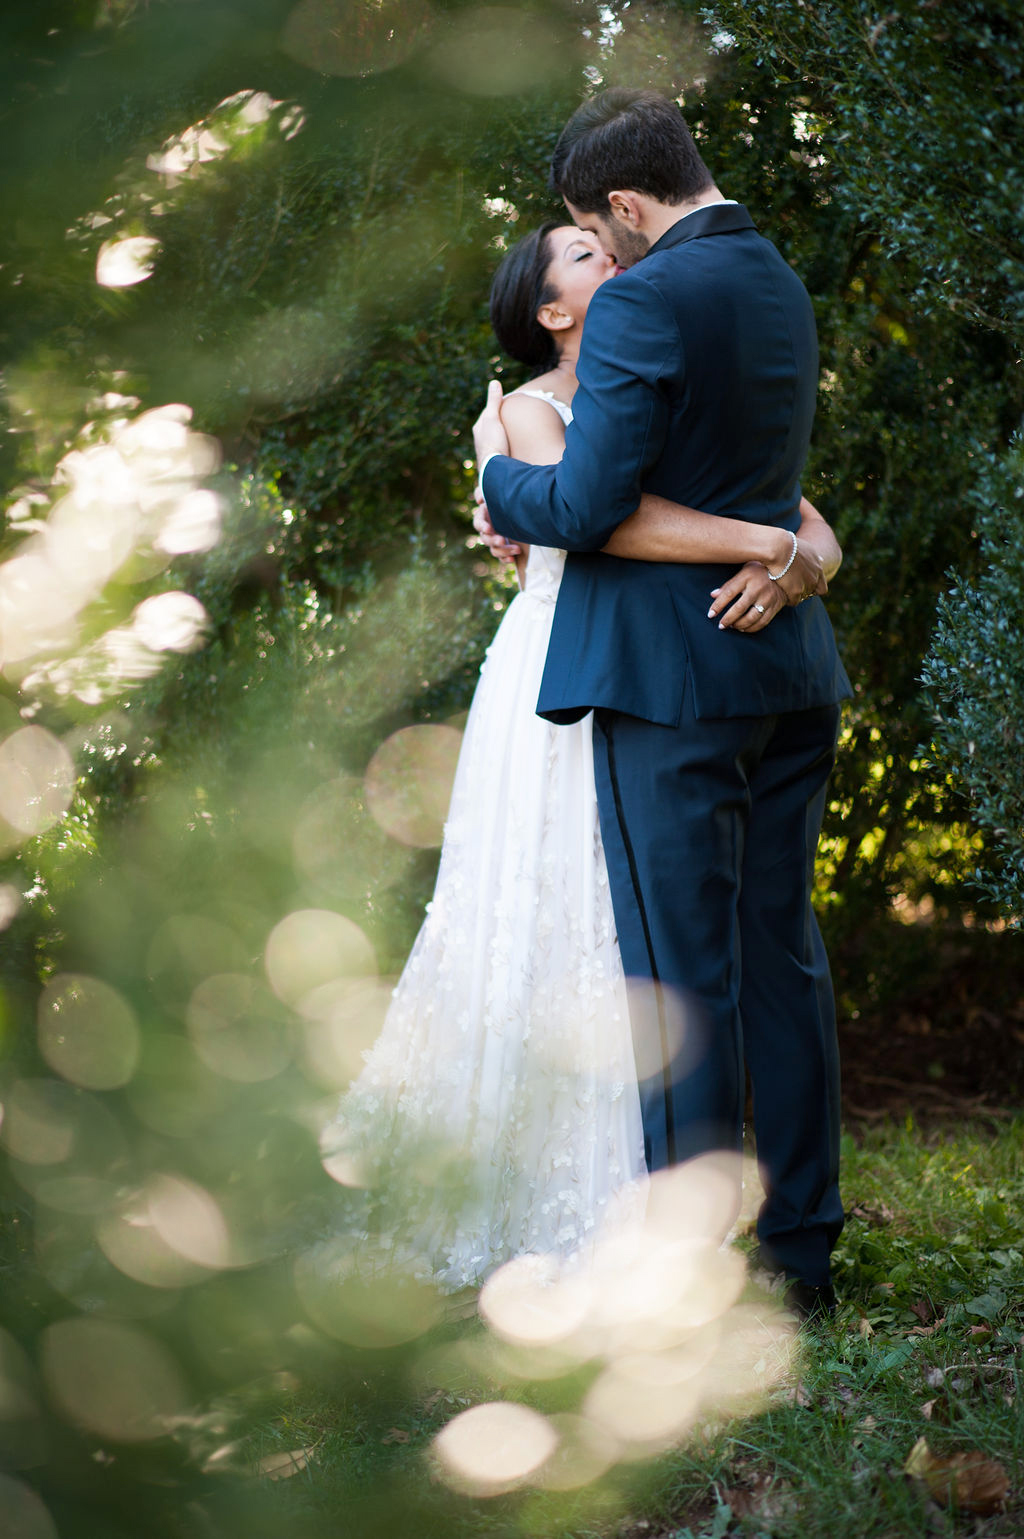 bride and groom hugging each other surrounded by greenery